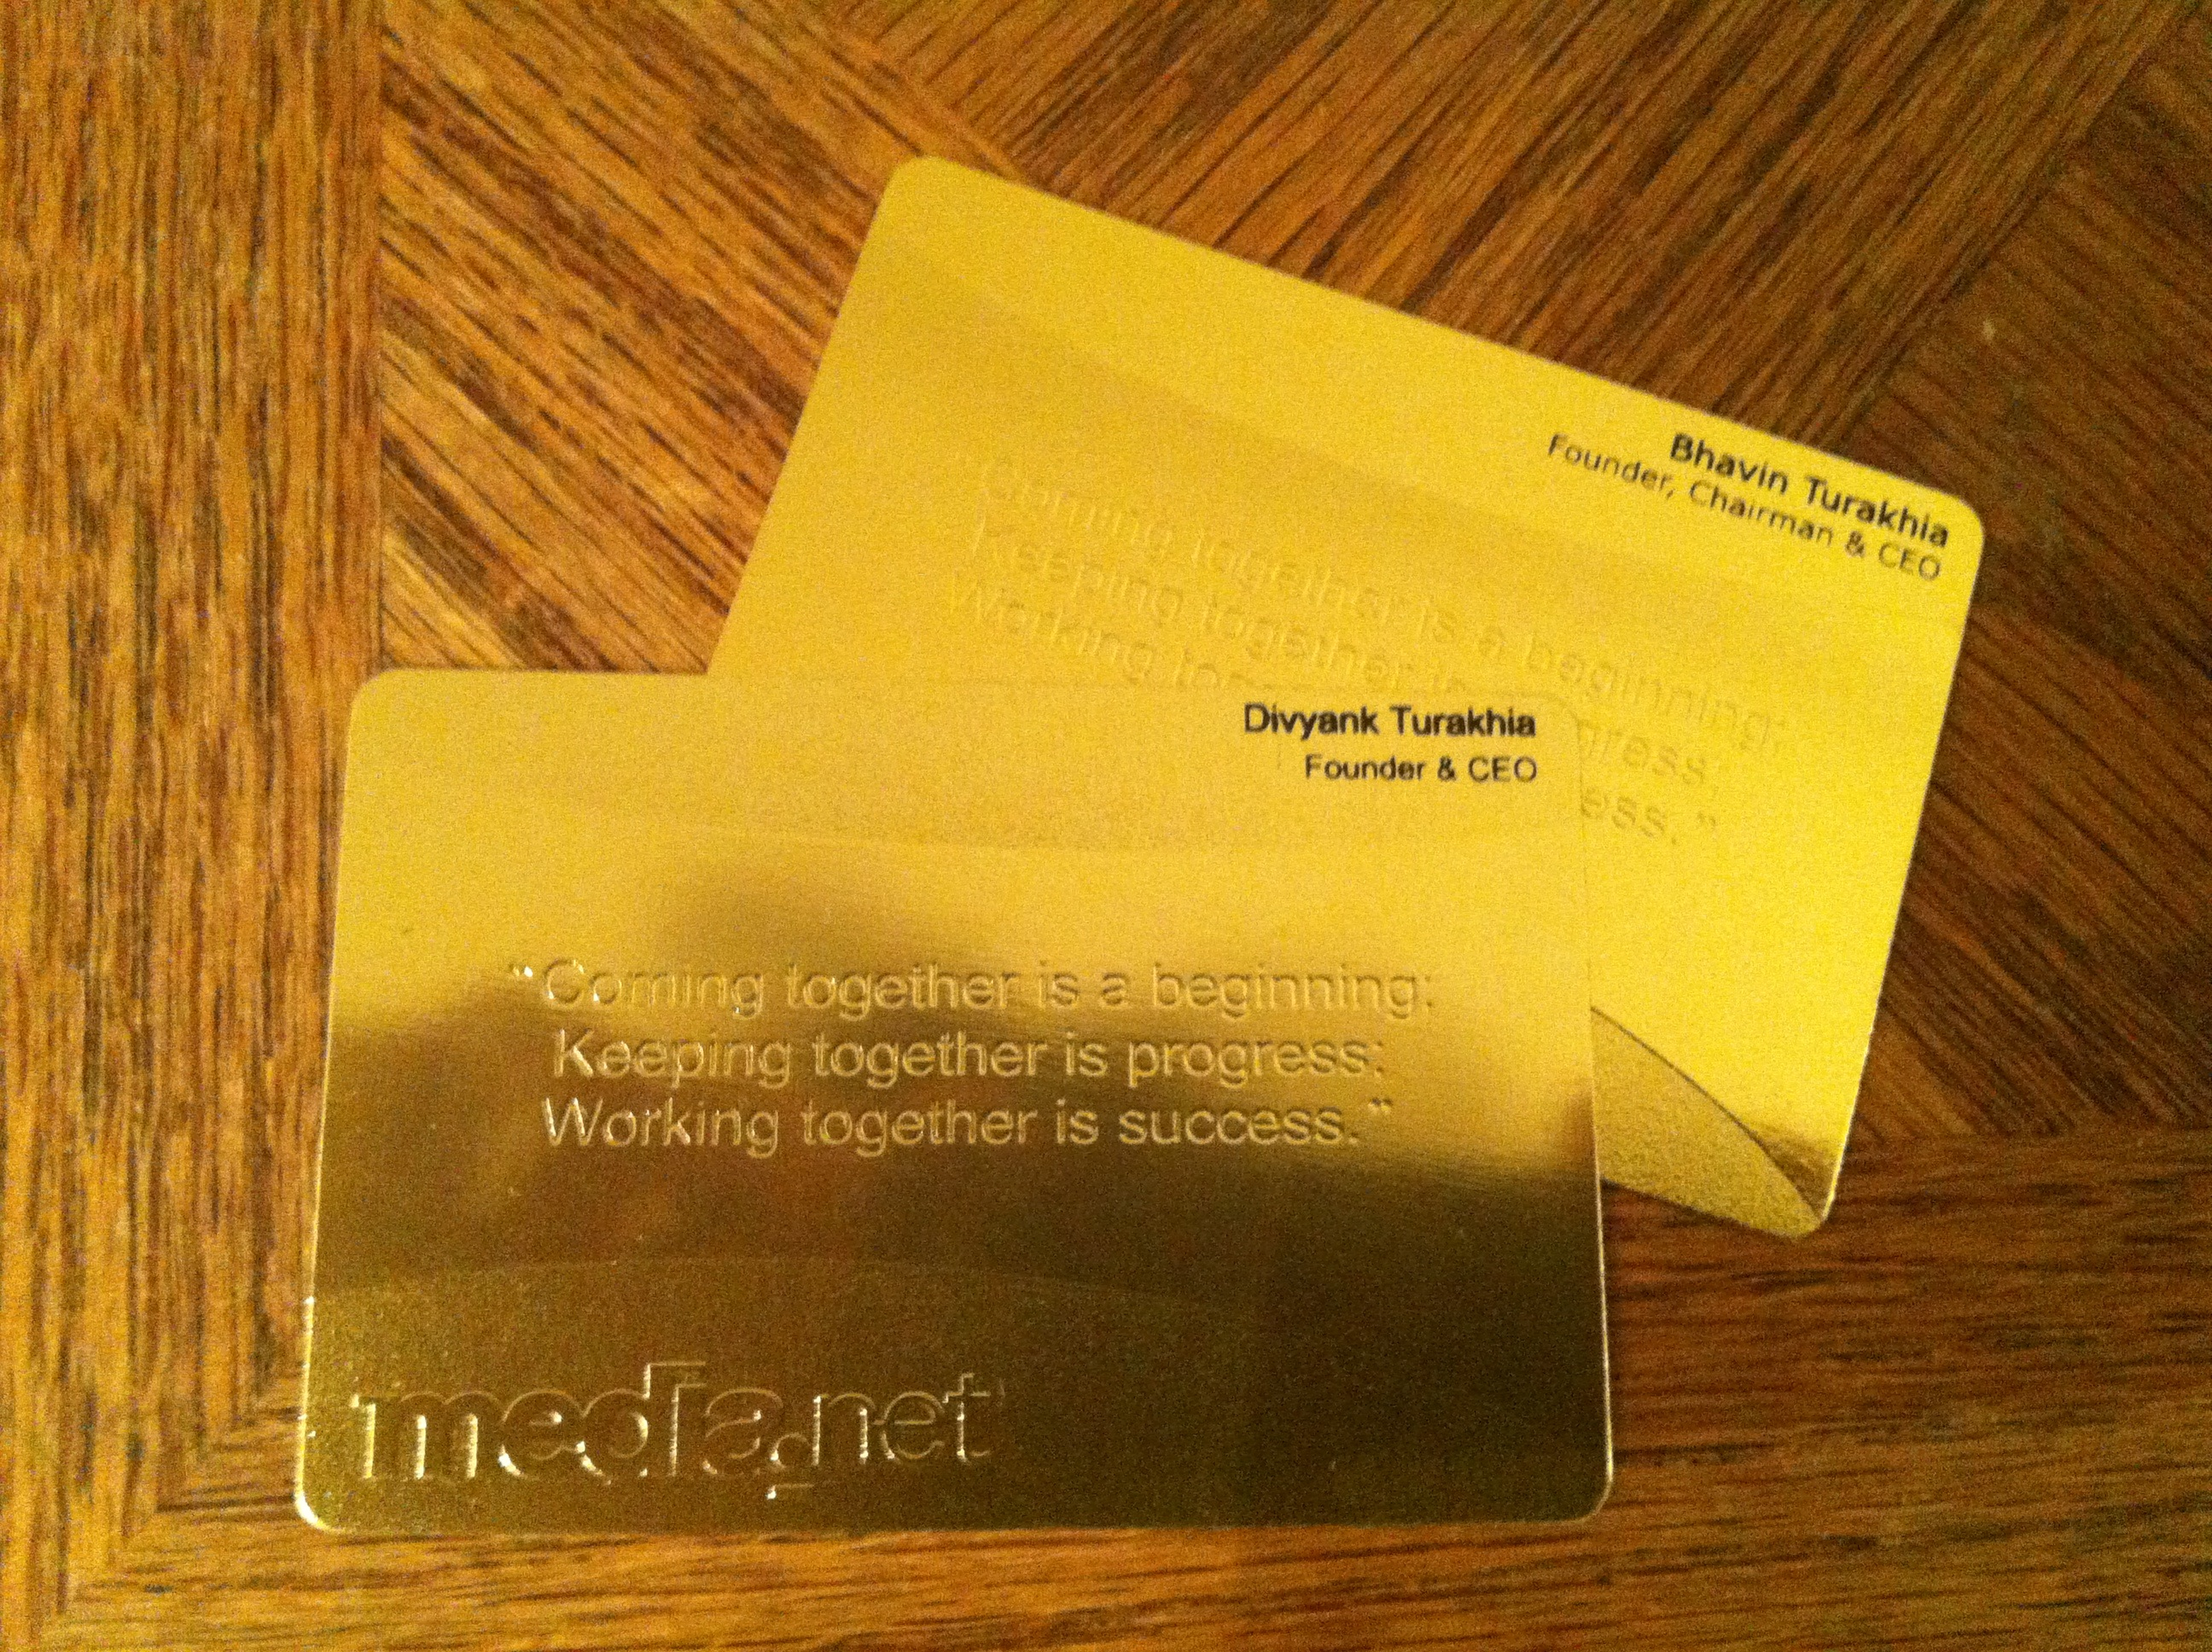 Gold Business Cards? - F.ounders NY 2012 at Charity:Water